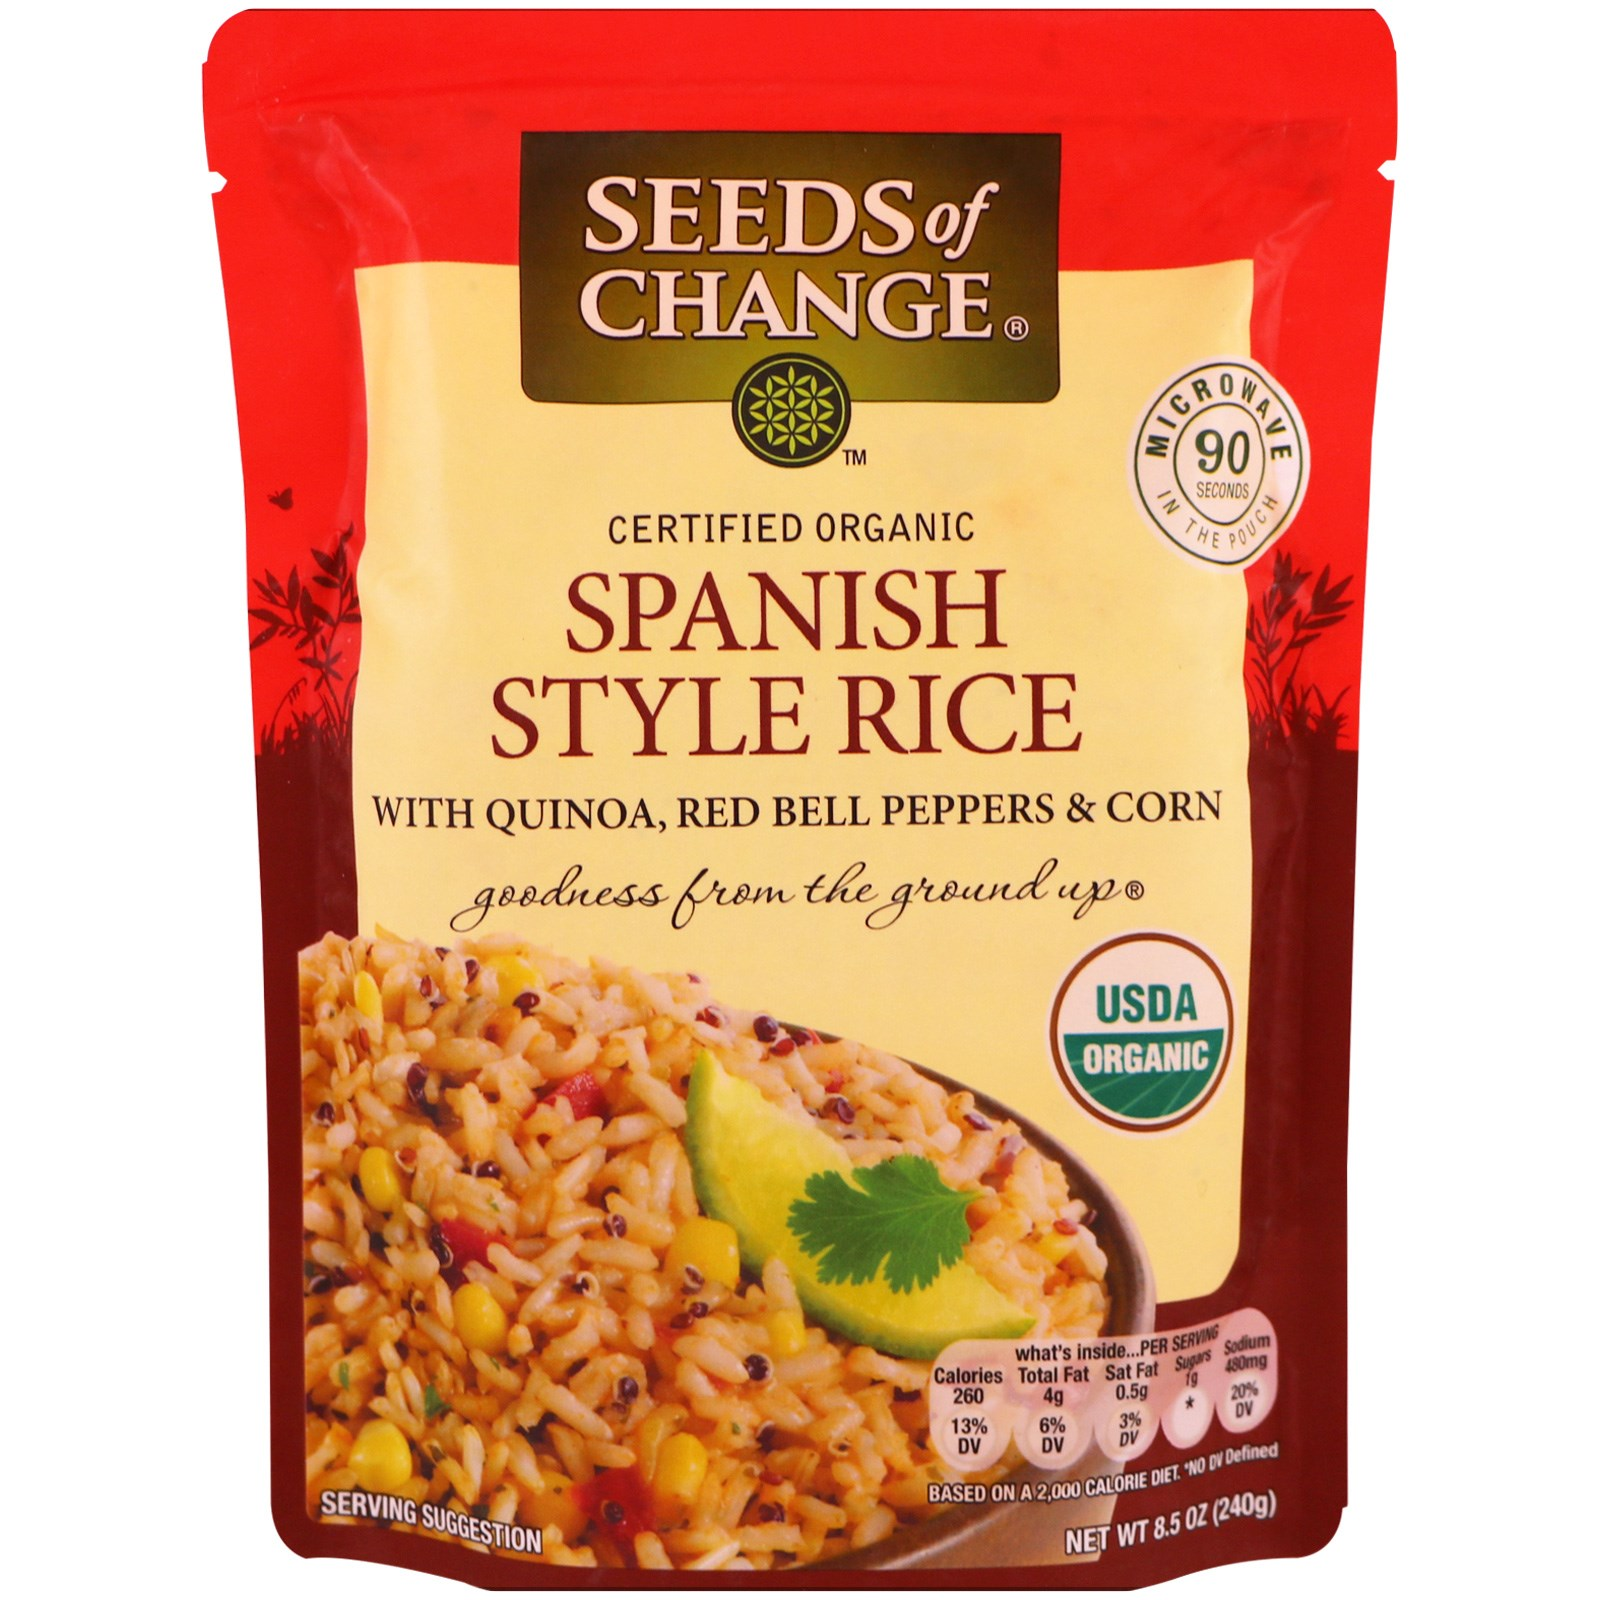 Seeds of Change, Organic, Spanish Style Rice, with Quinoa, Red Bell Peppers & Corn, 8.5 oz (pack of 1)